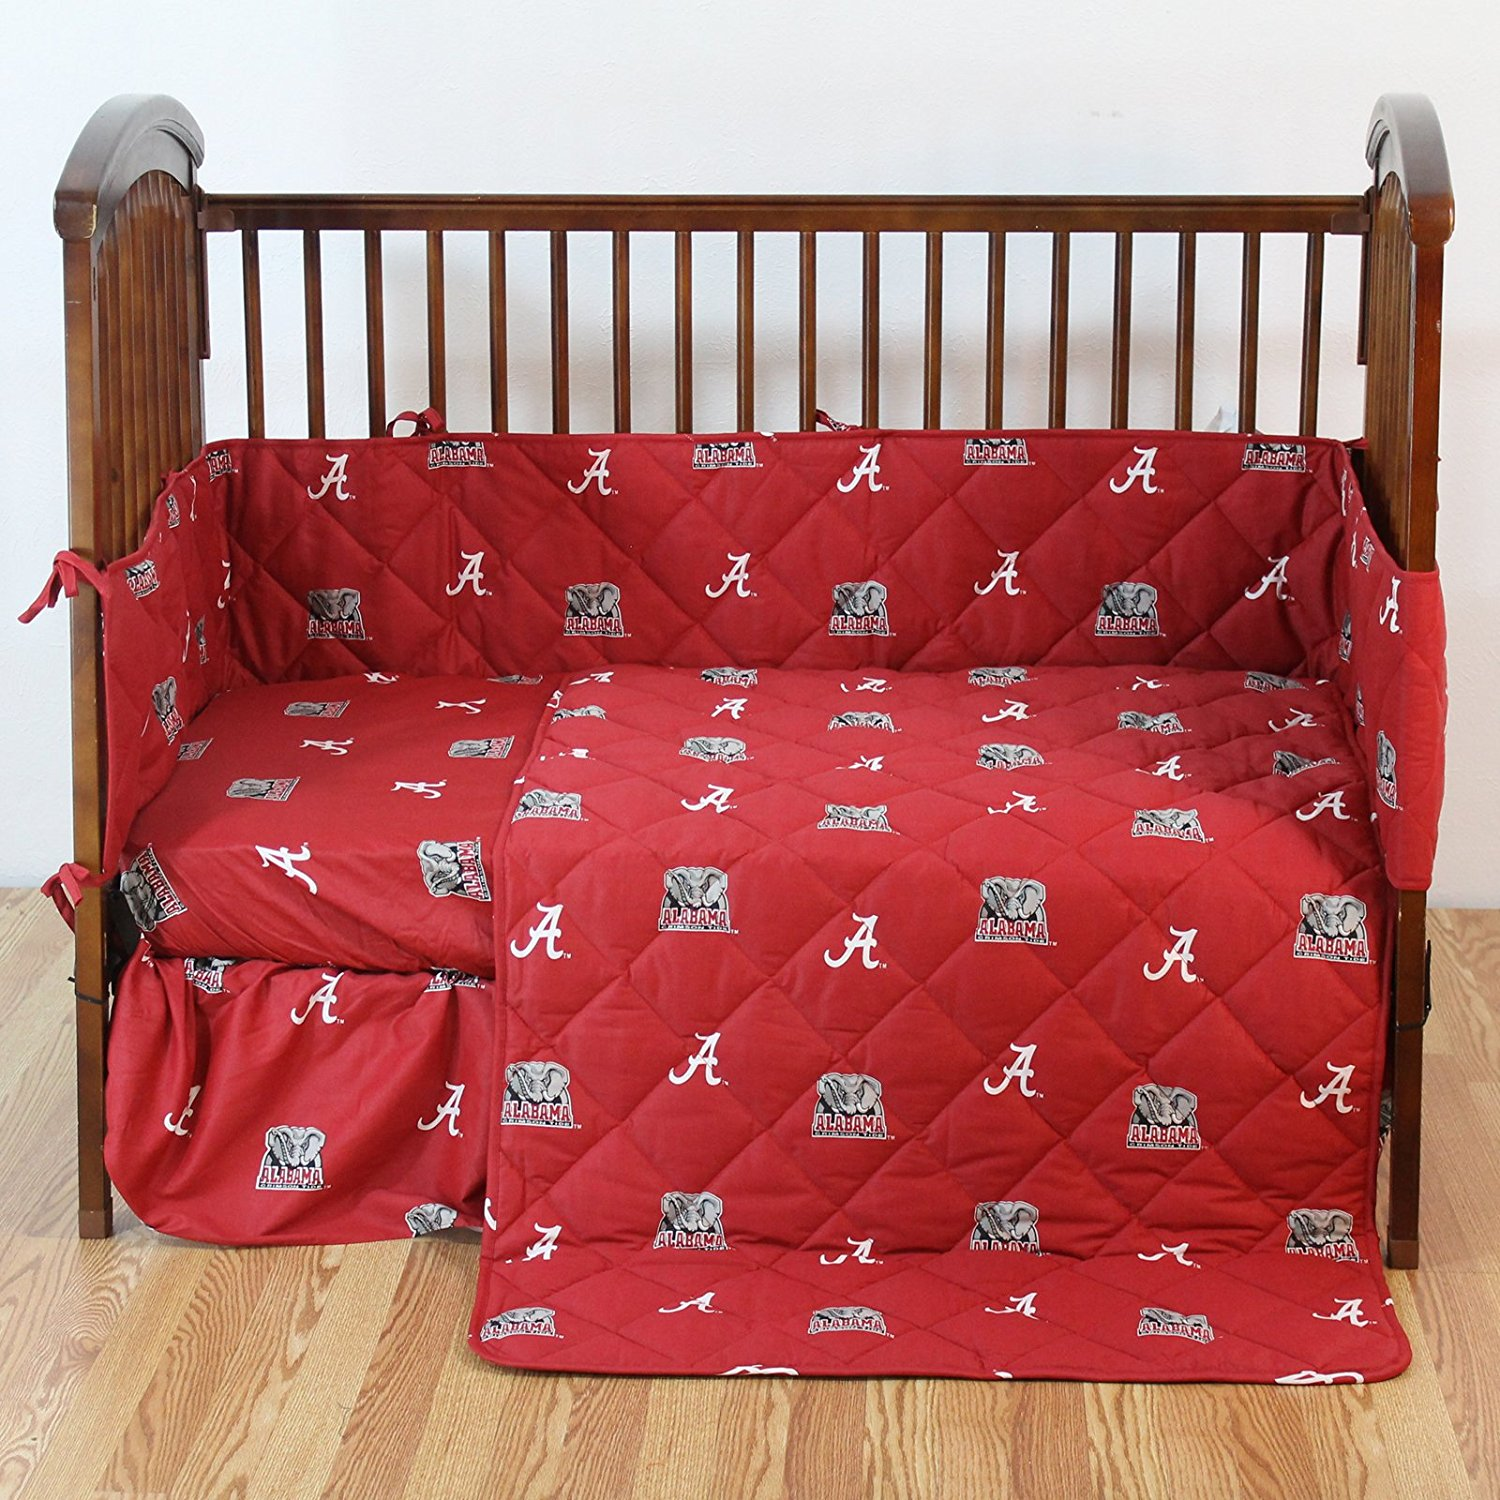 NCAA Alabama Tide 5 Piece Crib Bedding Set, 52' x 28' x 6', Crimson